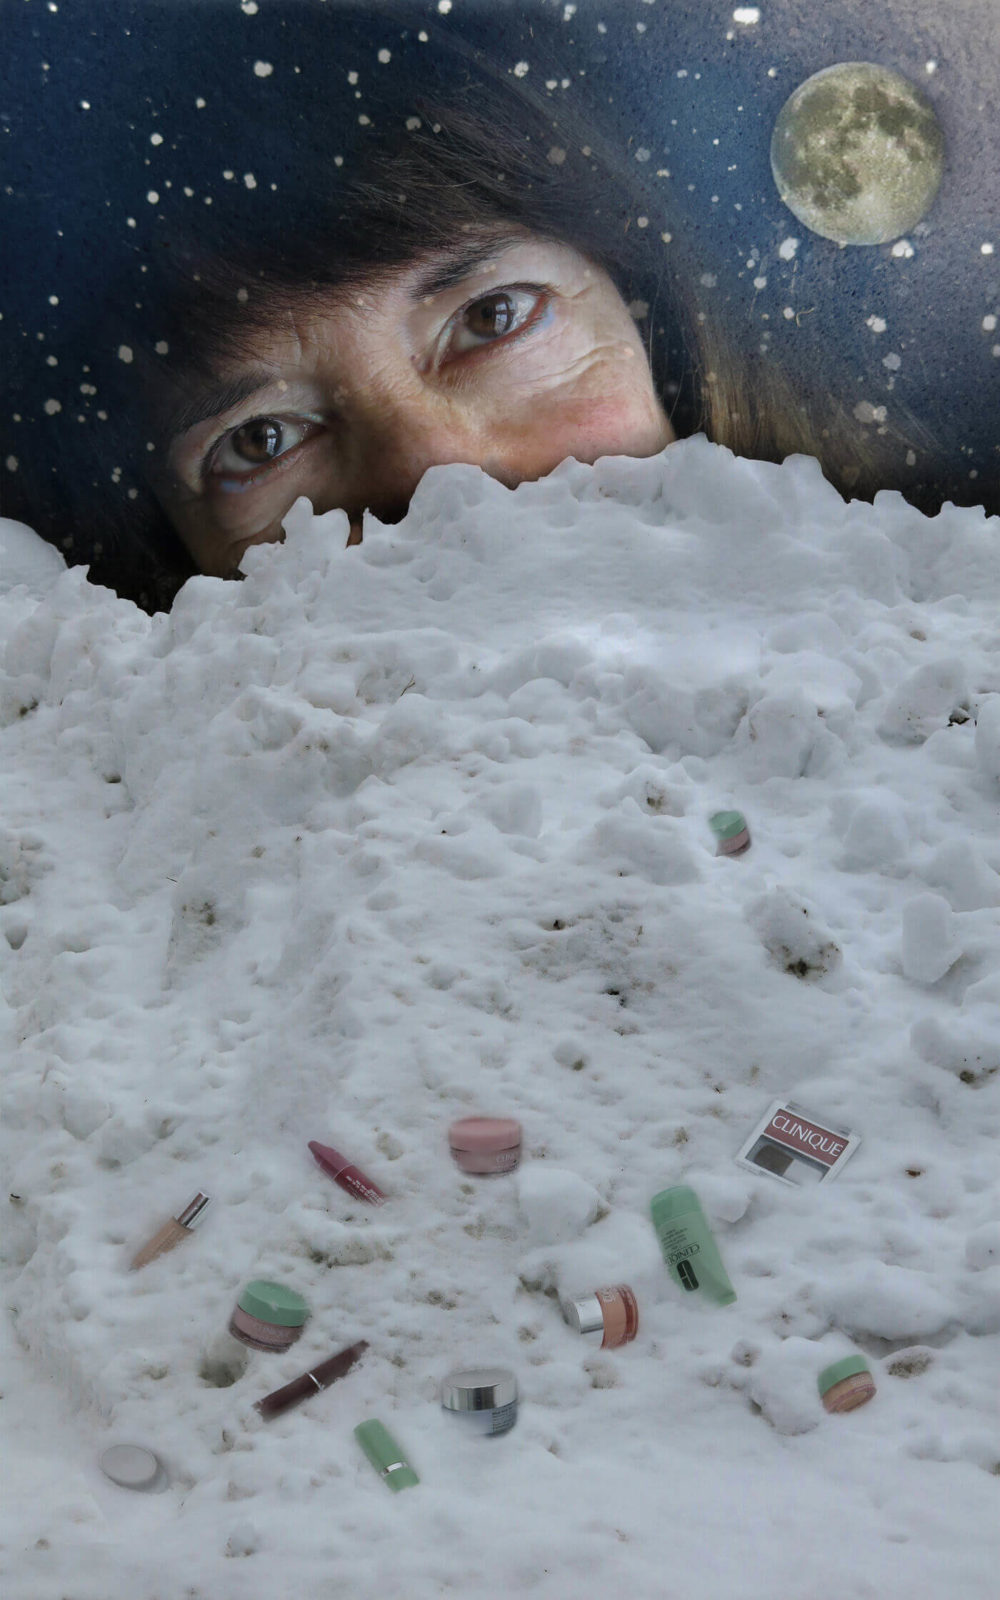 Robin Botie of Ithaca, New York, made up with iridesent eye shadow, watching the moon from behind piles of snow